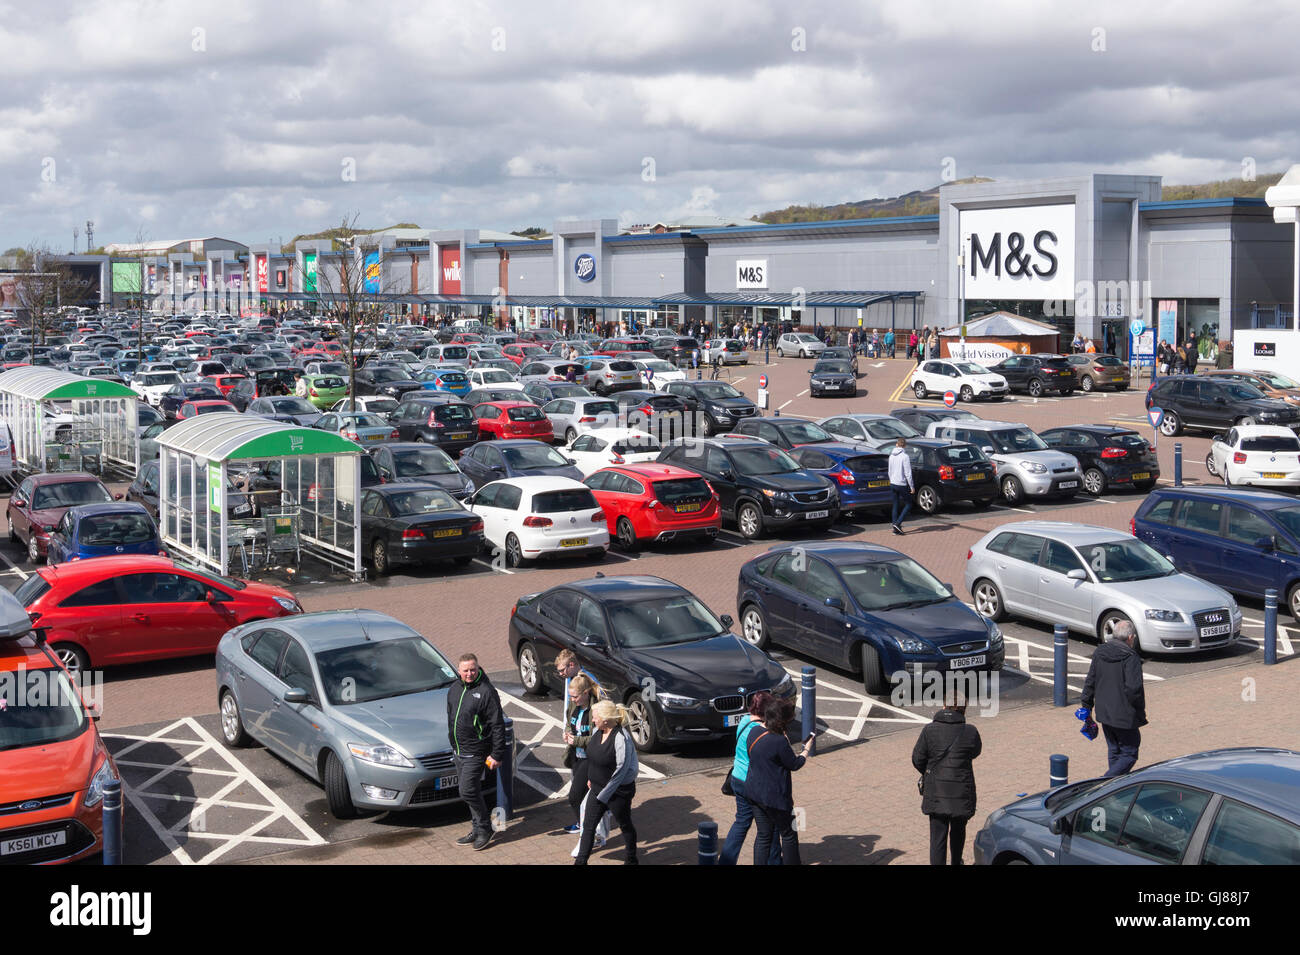 Middlebrook Retail Park Car Park in Horwich - Stock Image